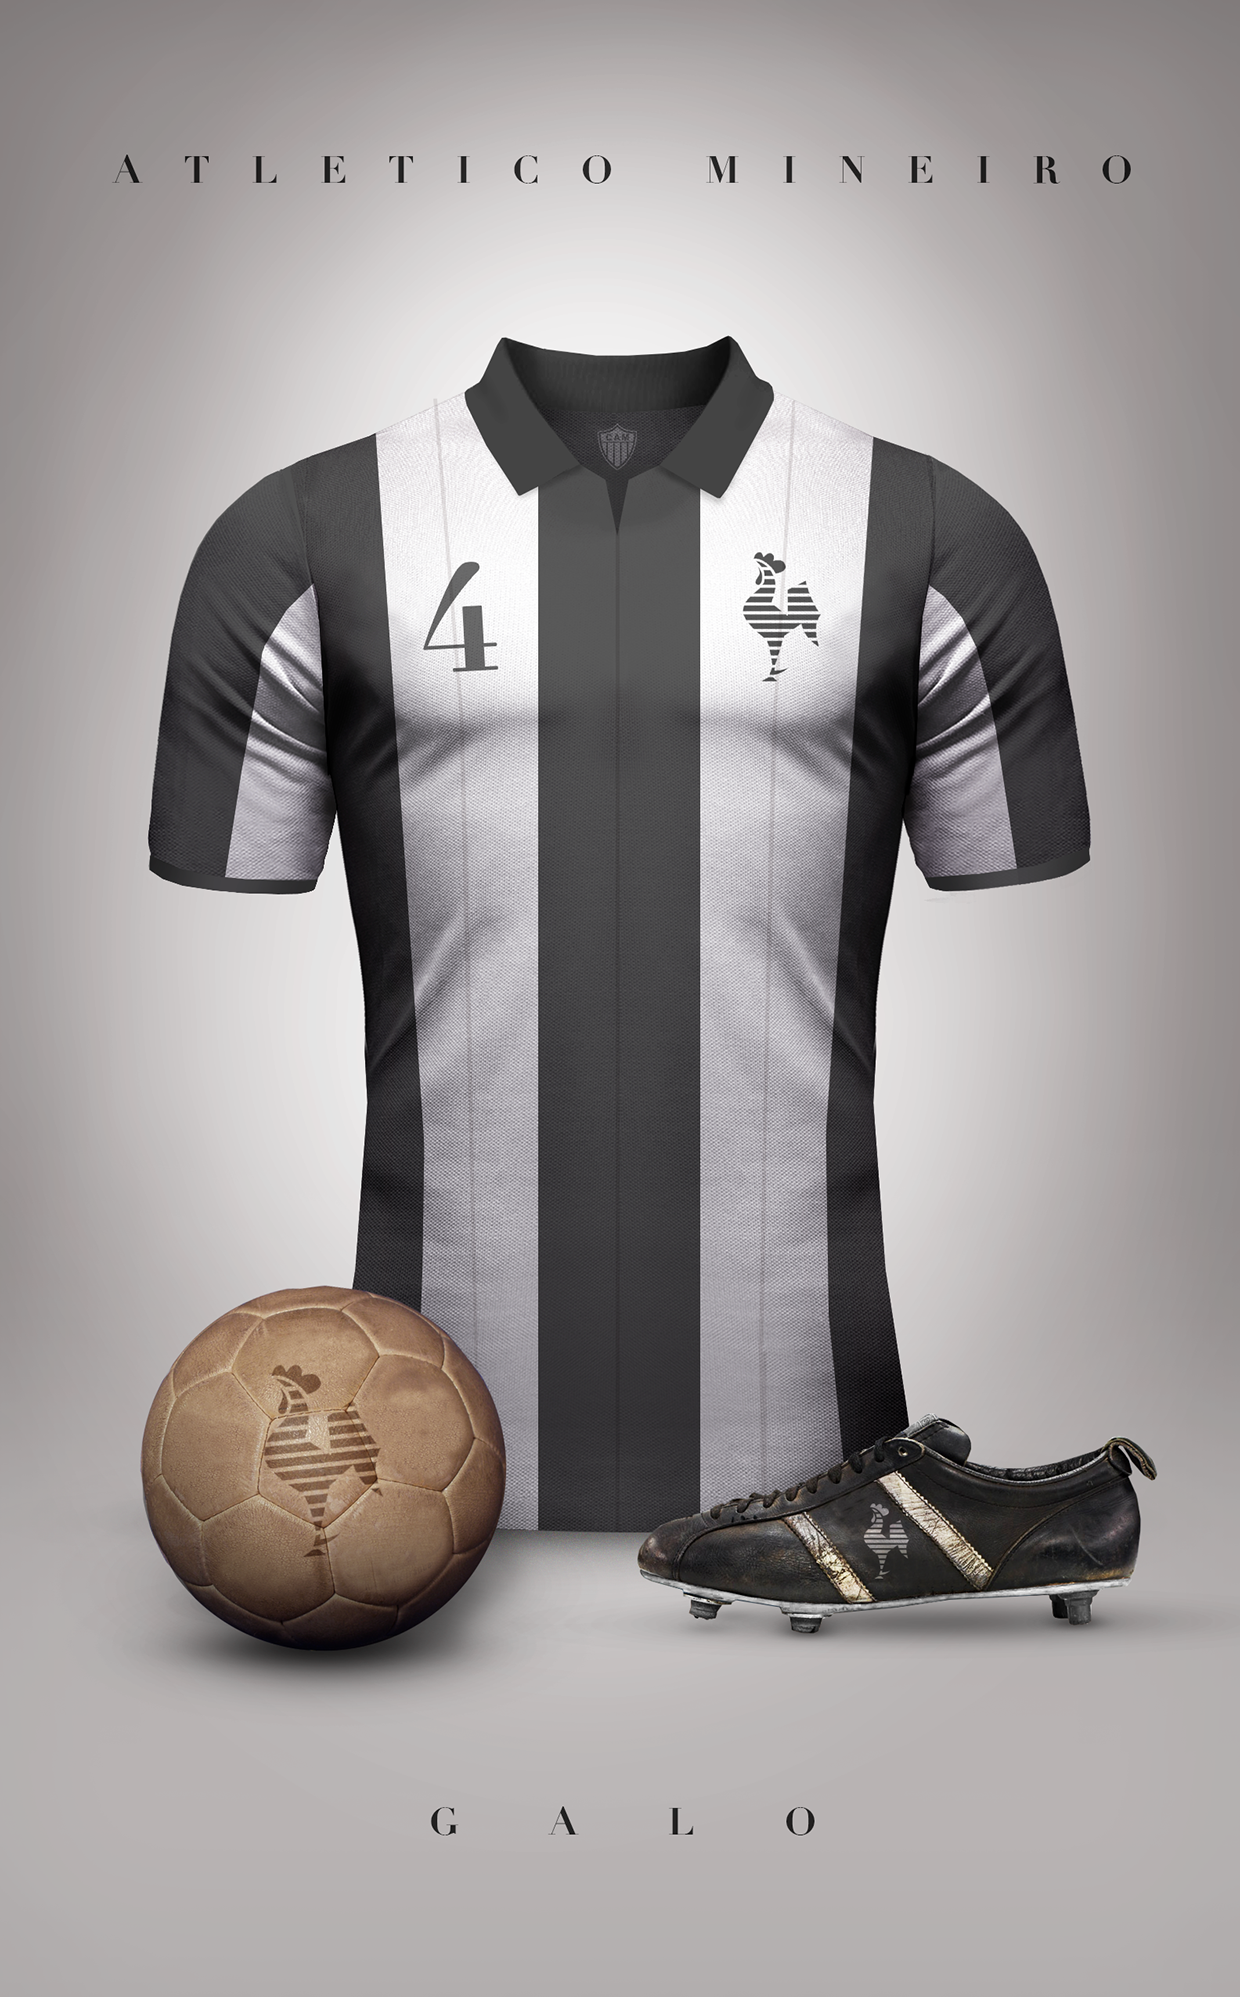 4b0552848 Concept designs of some football clubs in vintage style